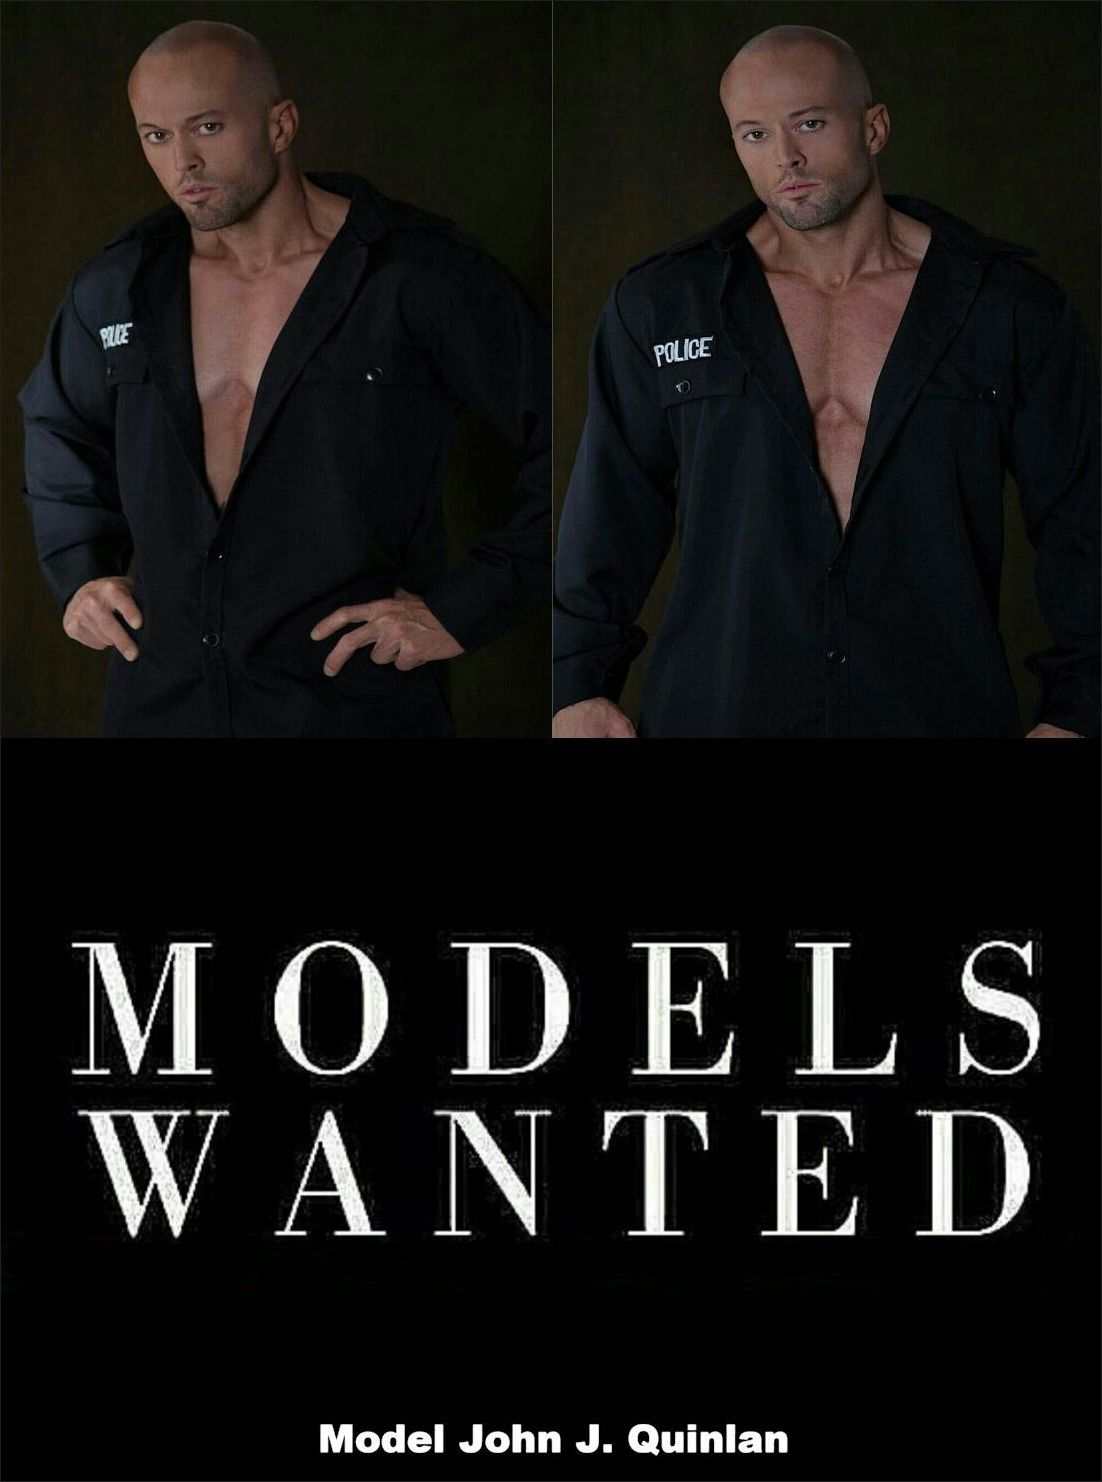 Romance Physique Model & Actor John Joseph Quinlan Models Wanted #JohnQuinlan